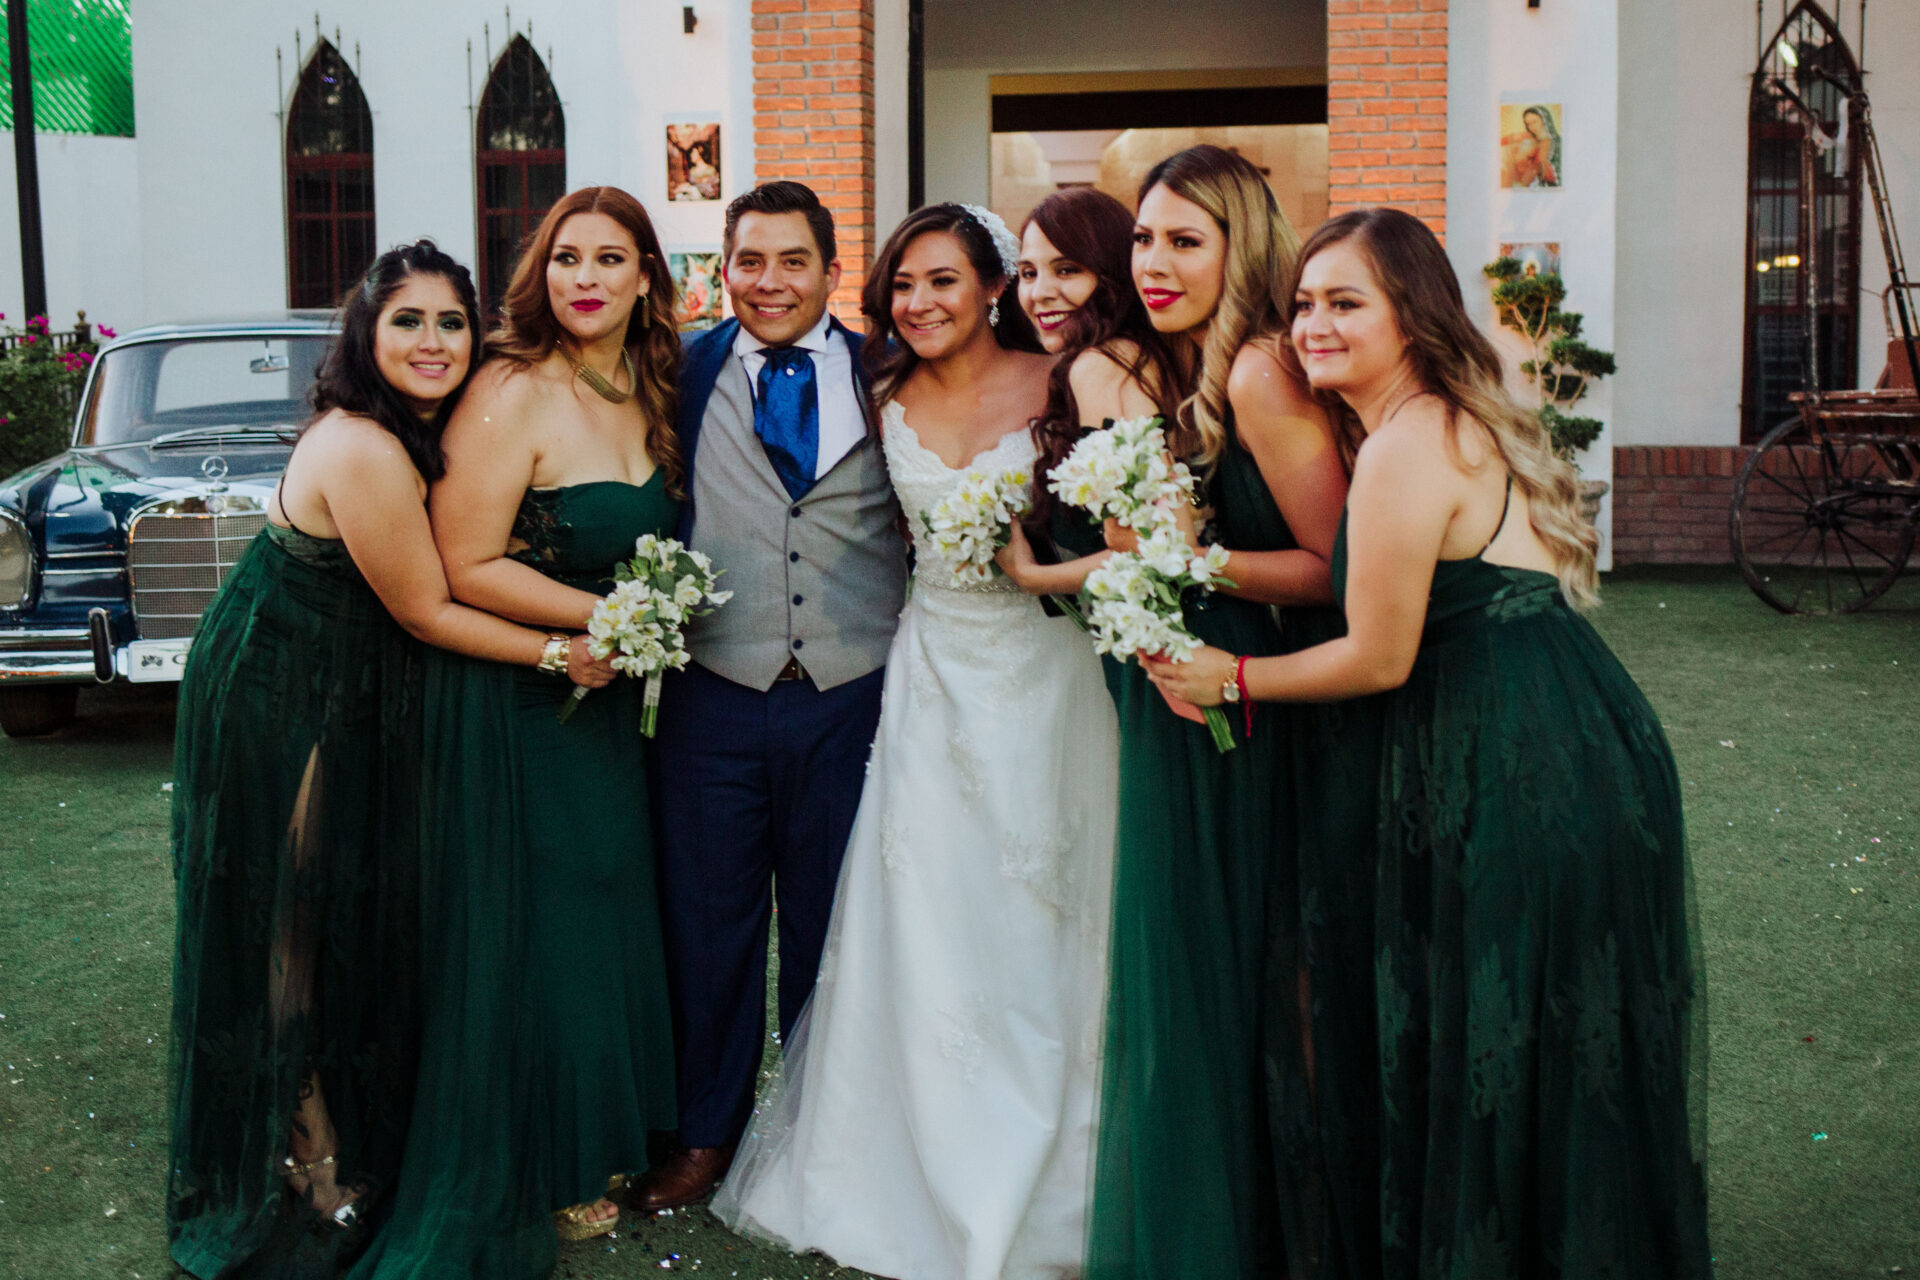 javier_noriega_fotografo_bodas_torreon_coahuila_zacatecas_wedding_photographer49a